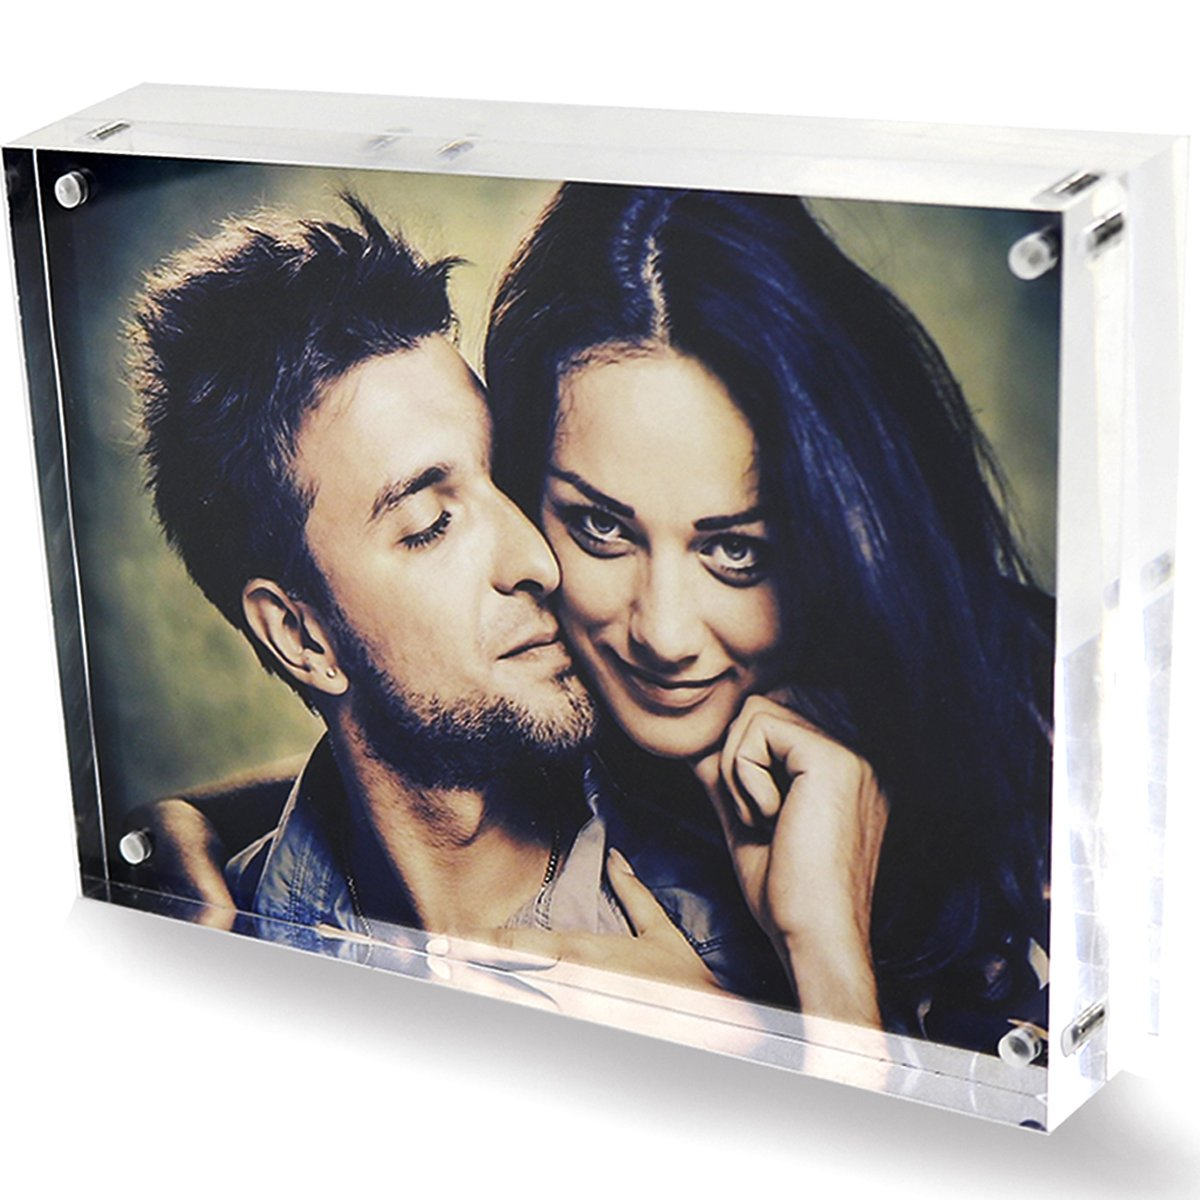 Clear Acrylic 6x8 Magnetic Picture Frames, Love Double Sided Magnetic Photo Frames, Home Office Table Plexiglass Picture Display Stand Holder for Best Friends Children Grandpa Wedding